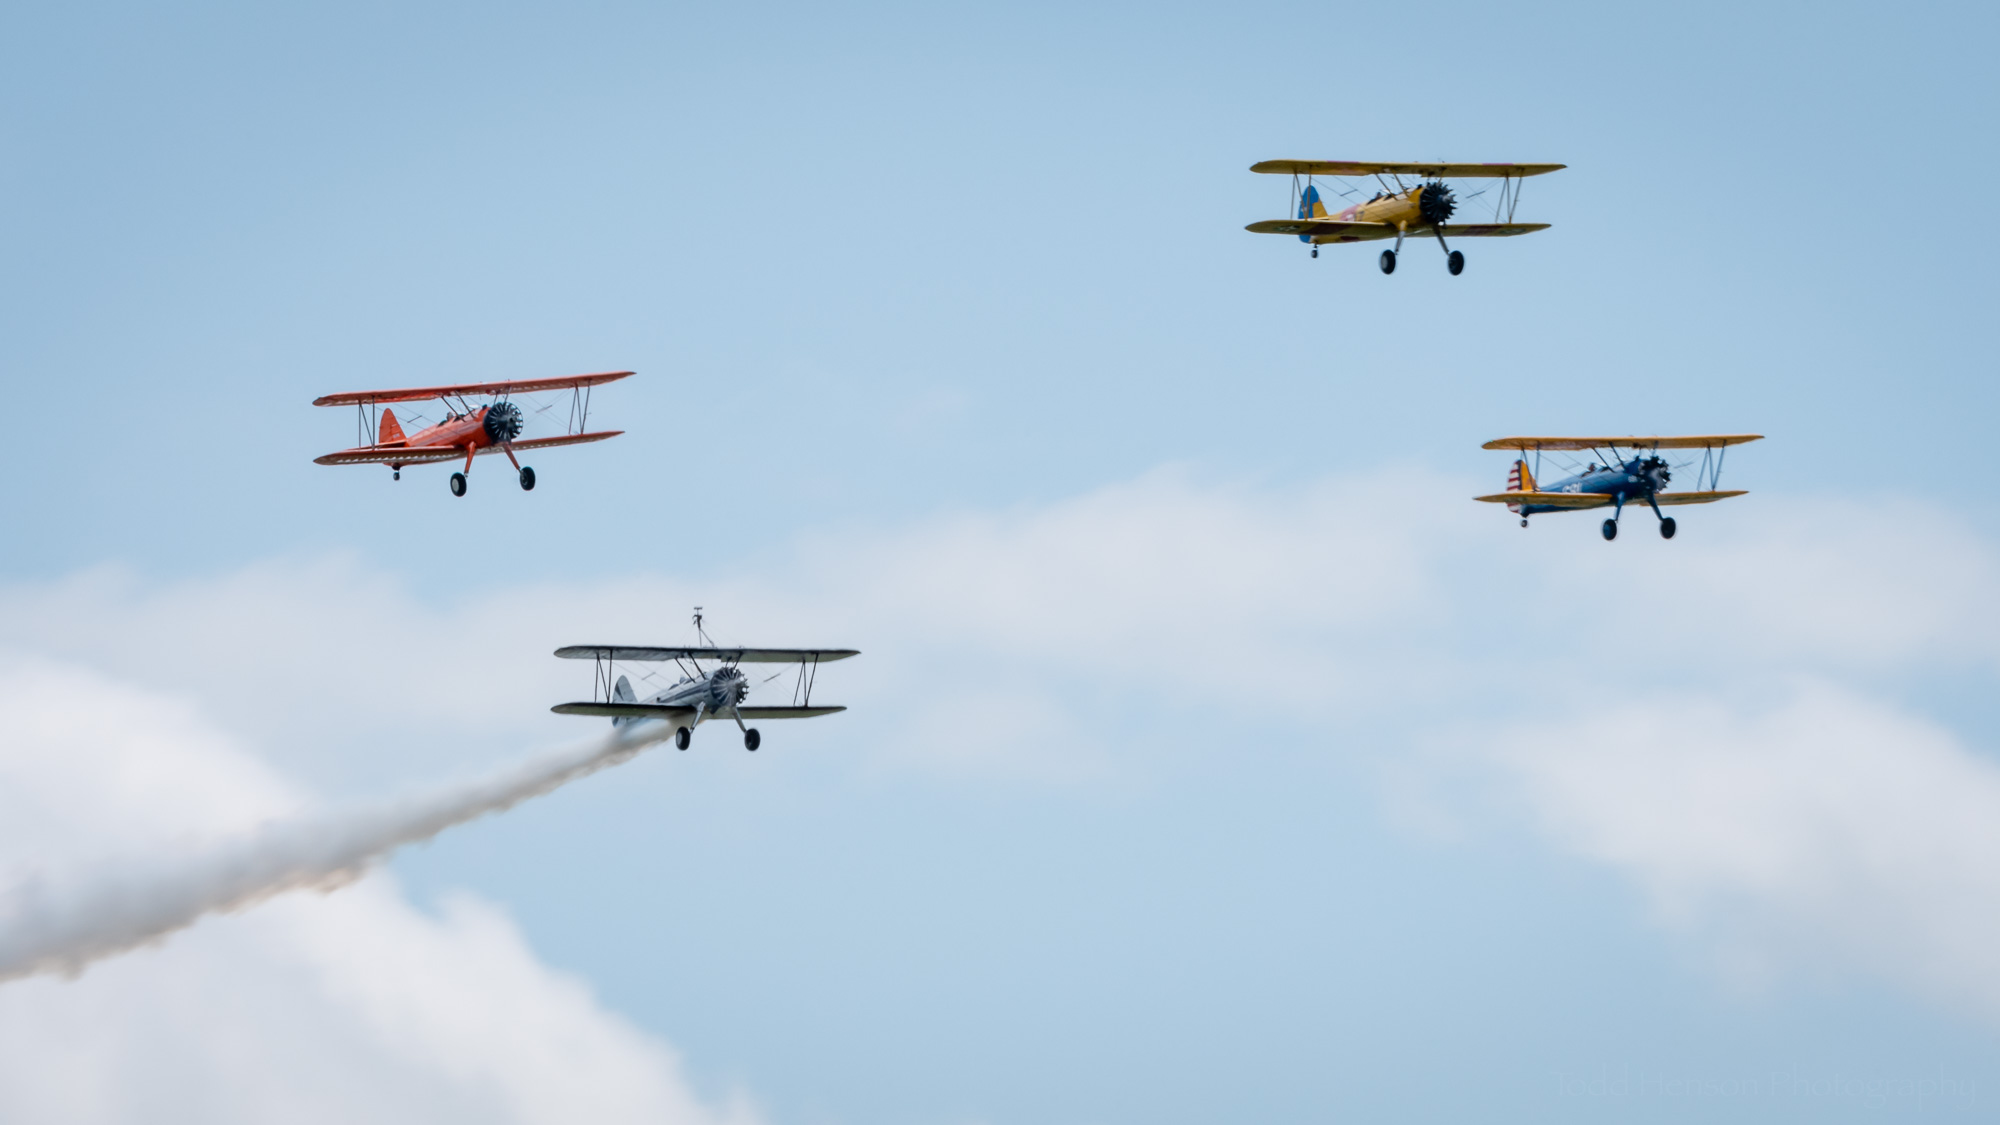 The Bealeton Flying Circus Stearman biplans flying in formation.